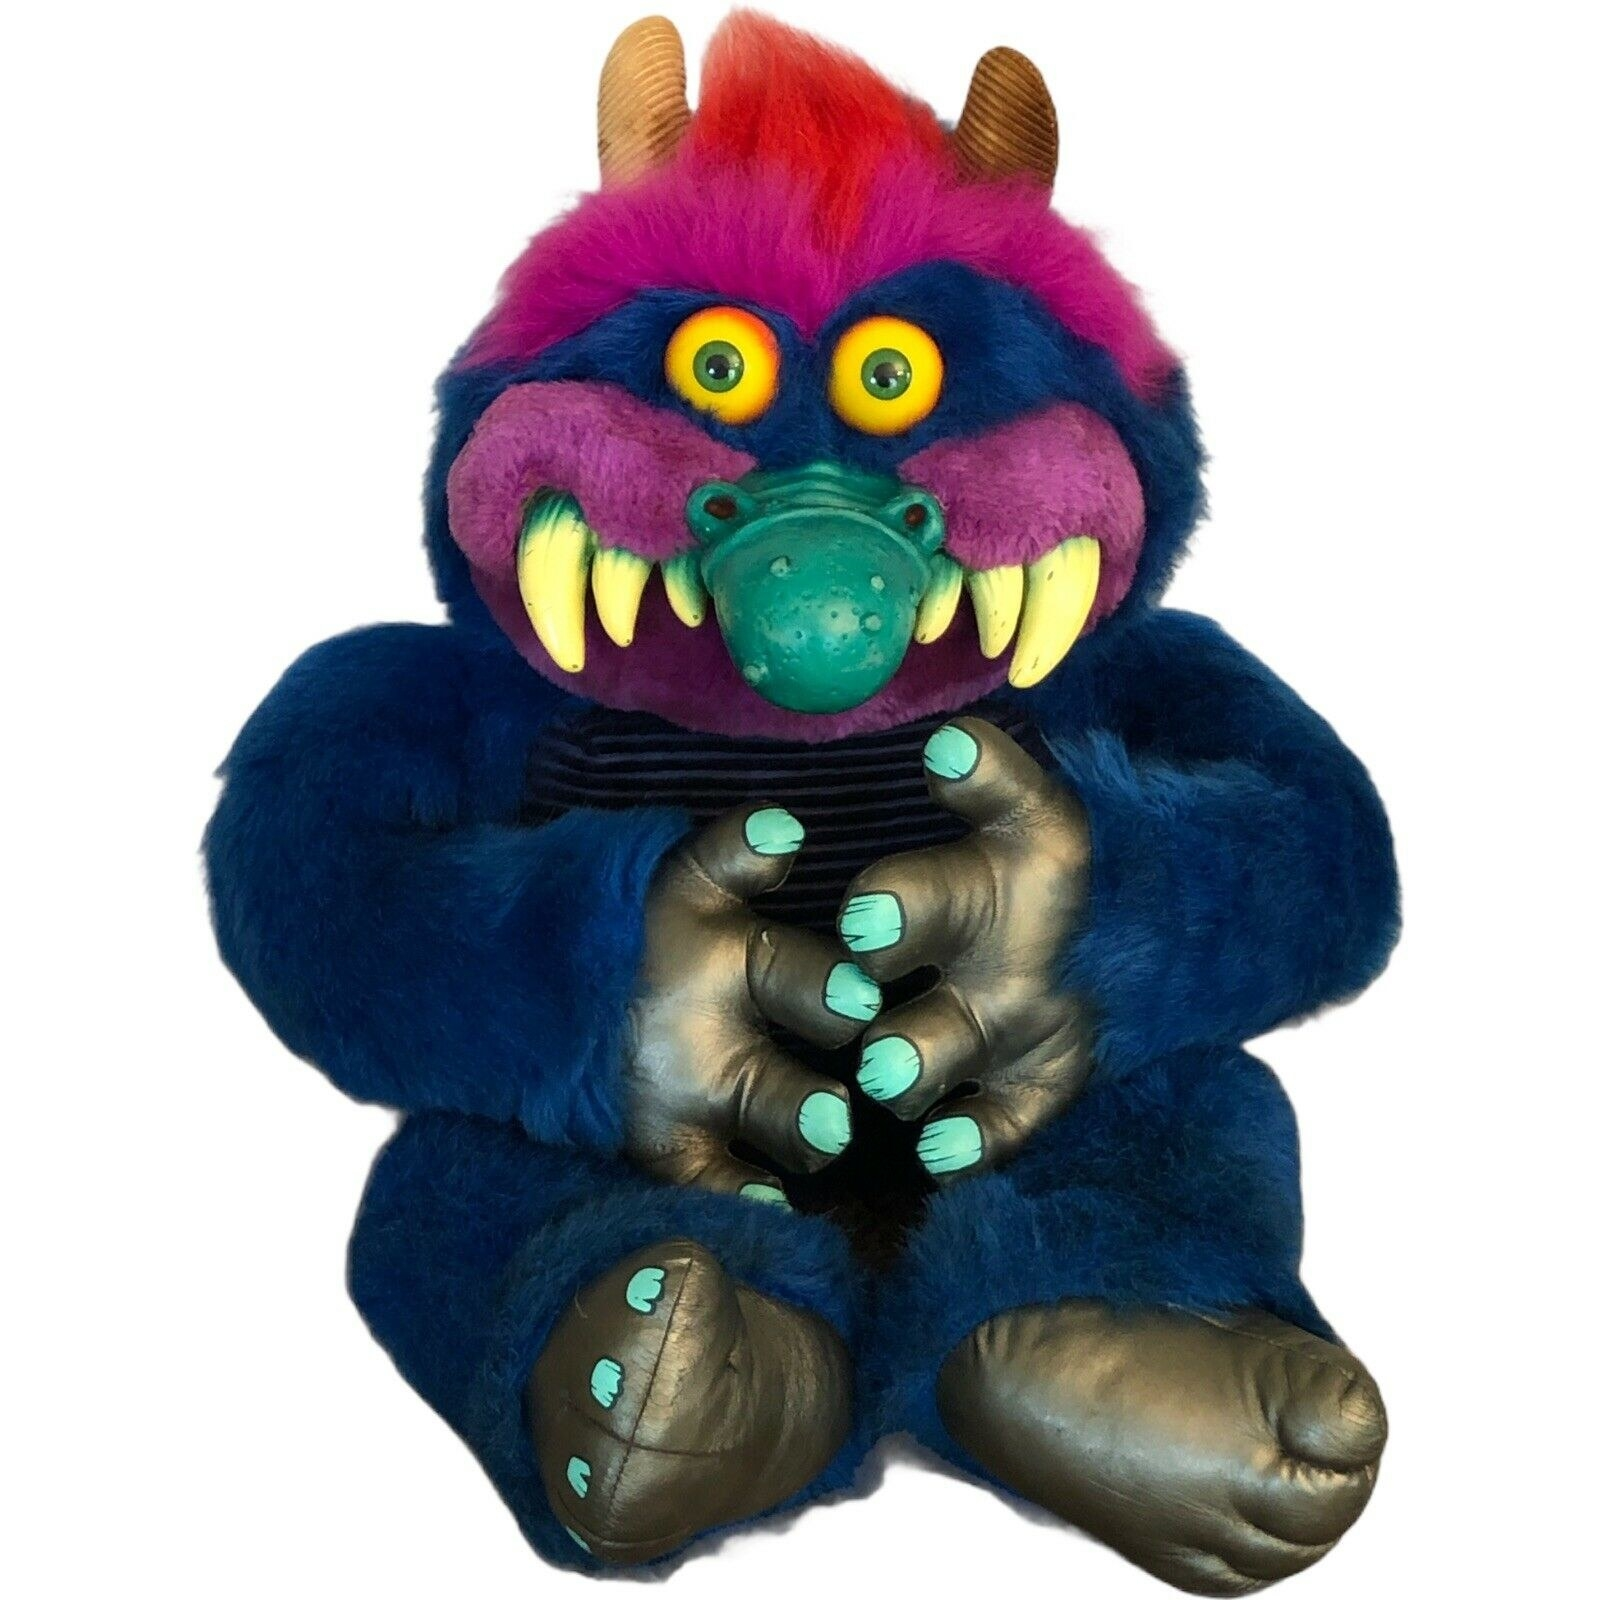 A cute-ish blue and purple monster with a big teal plastic nose